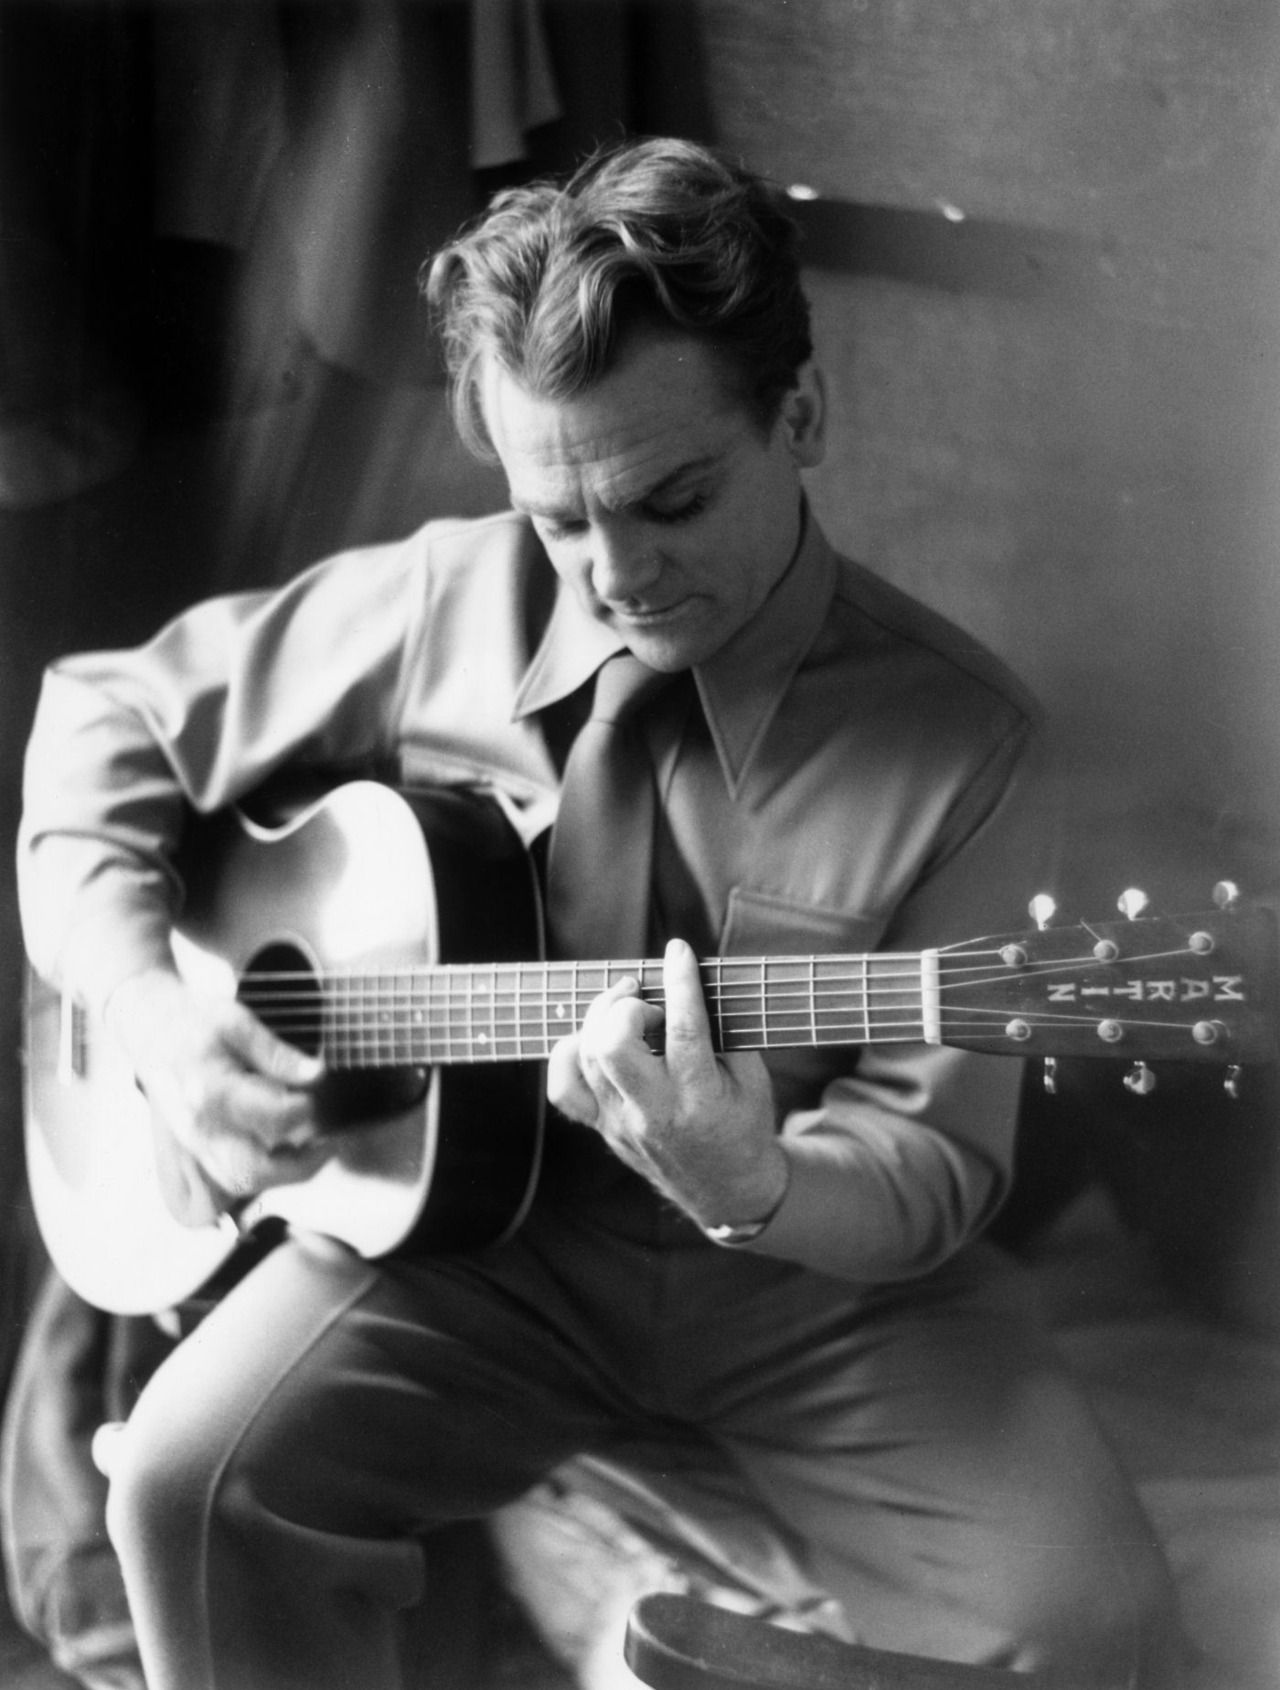 Craig Shparago: James Cagney playing a Martin guitar.  Cagney played the piano and classical guitar, wrote poetry, and was admittedly more comfortable with the regular people who worked on the movie set than with the glamorous, highfalutin' stars he so often outshined.